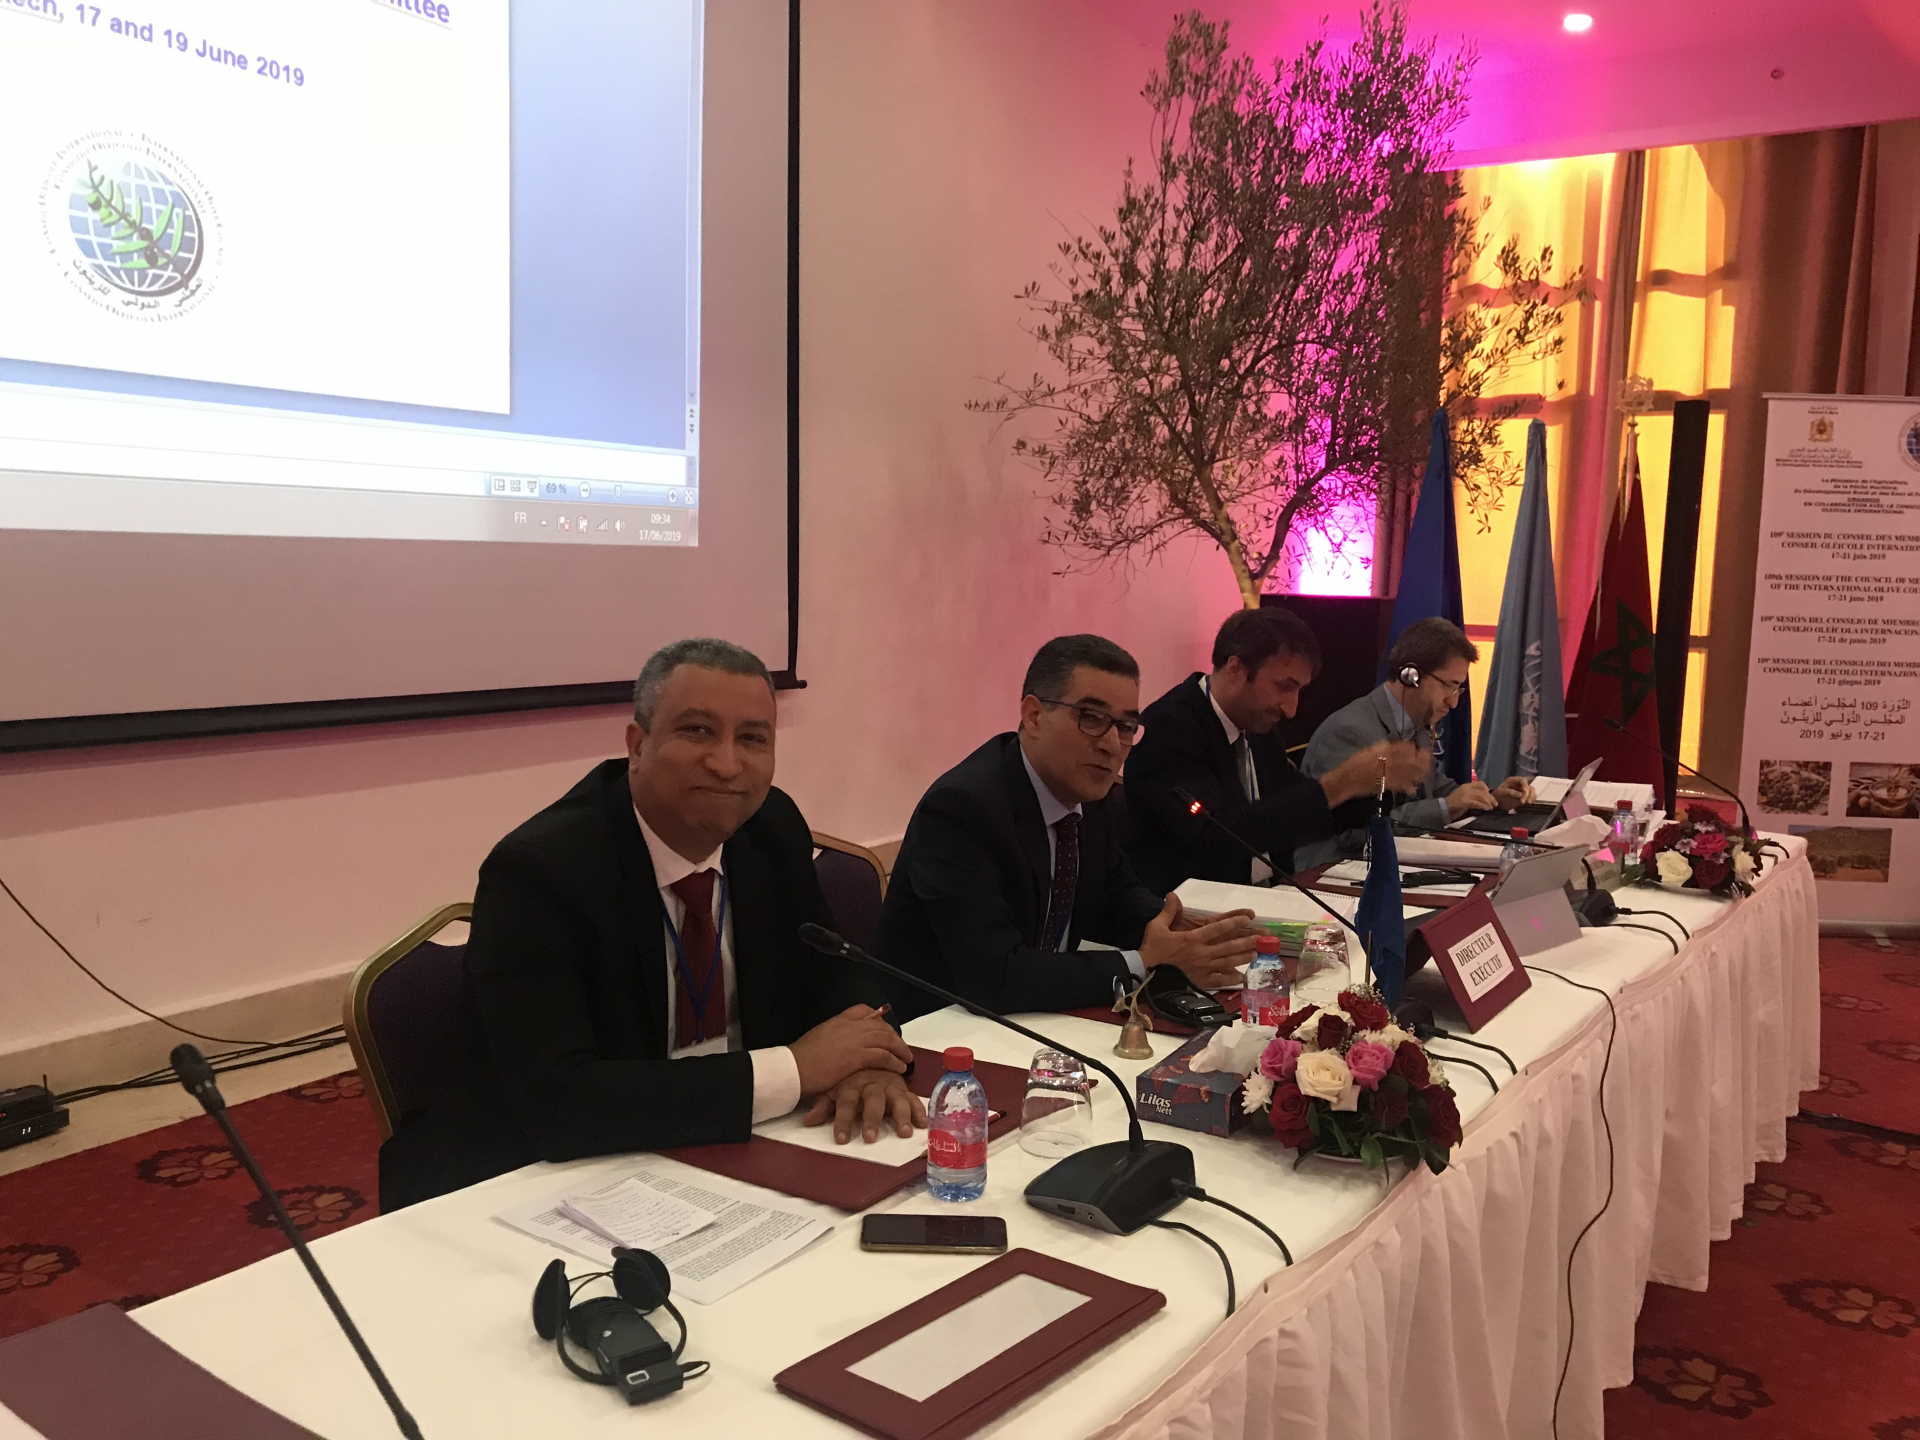 109th session of the Council of Members begins in Marrakech